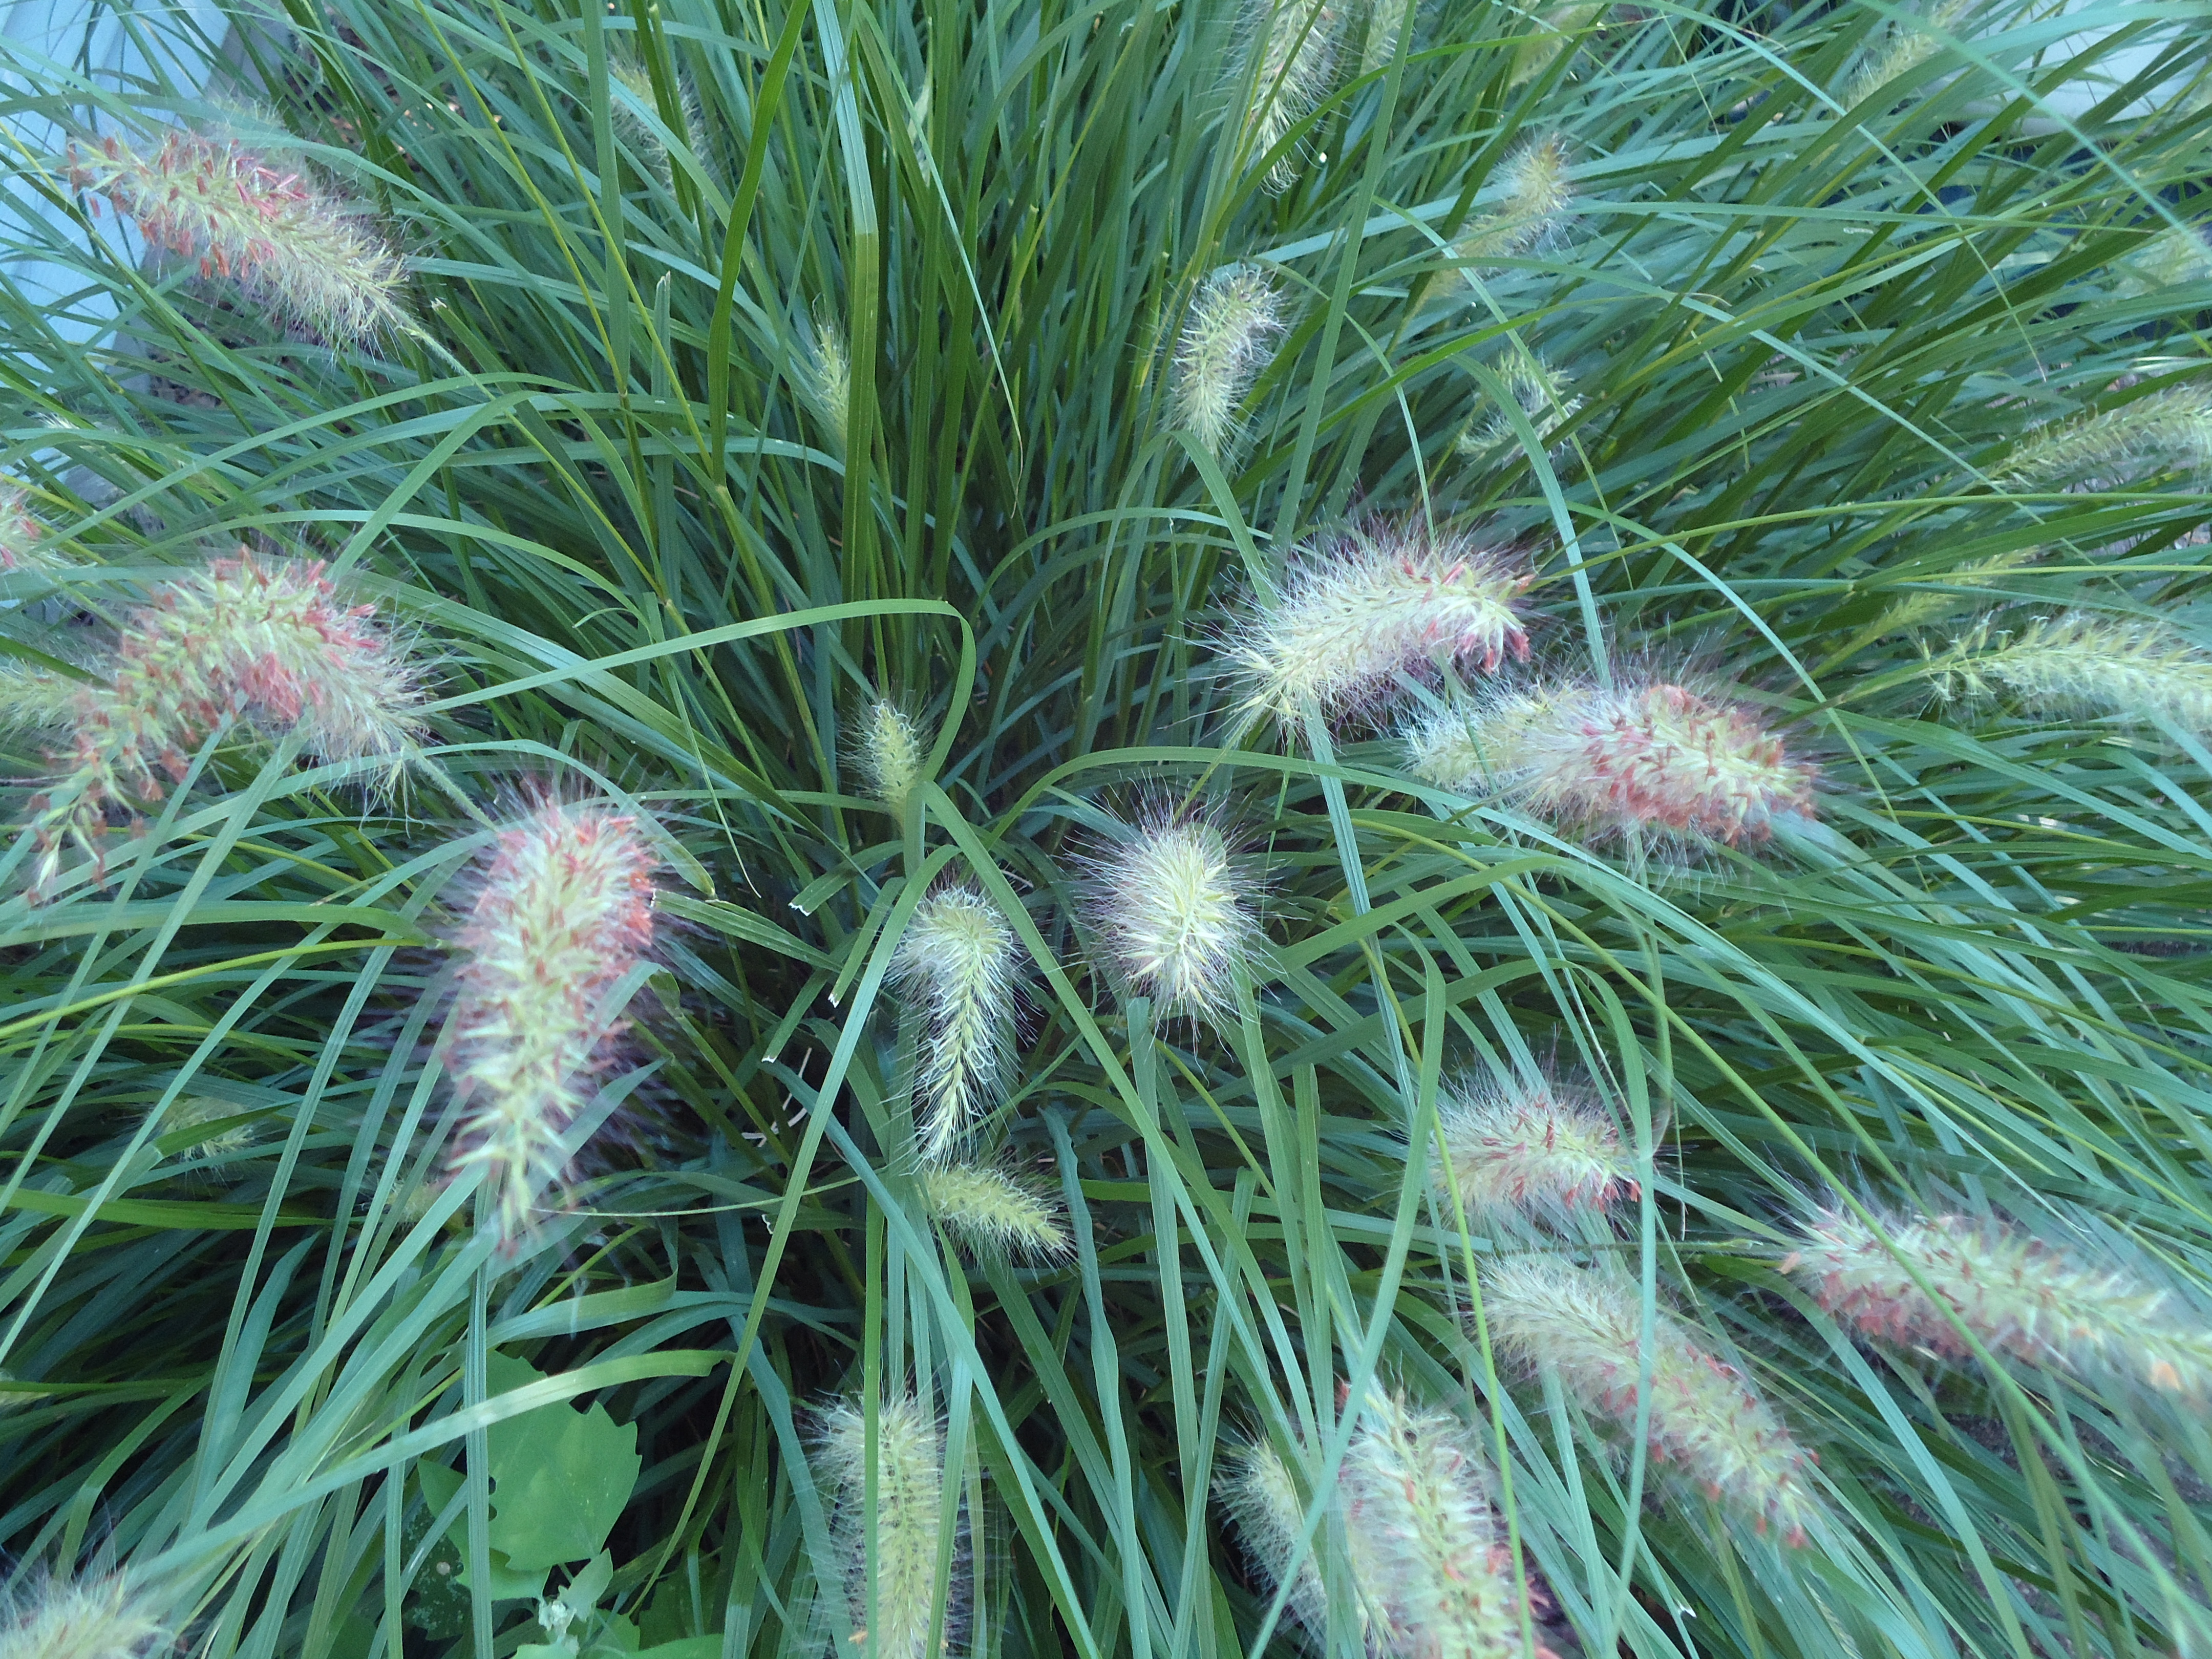 Ornamental grass terri 39 s notebook for Ornamental grasses that bloom